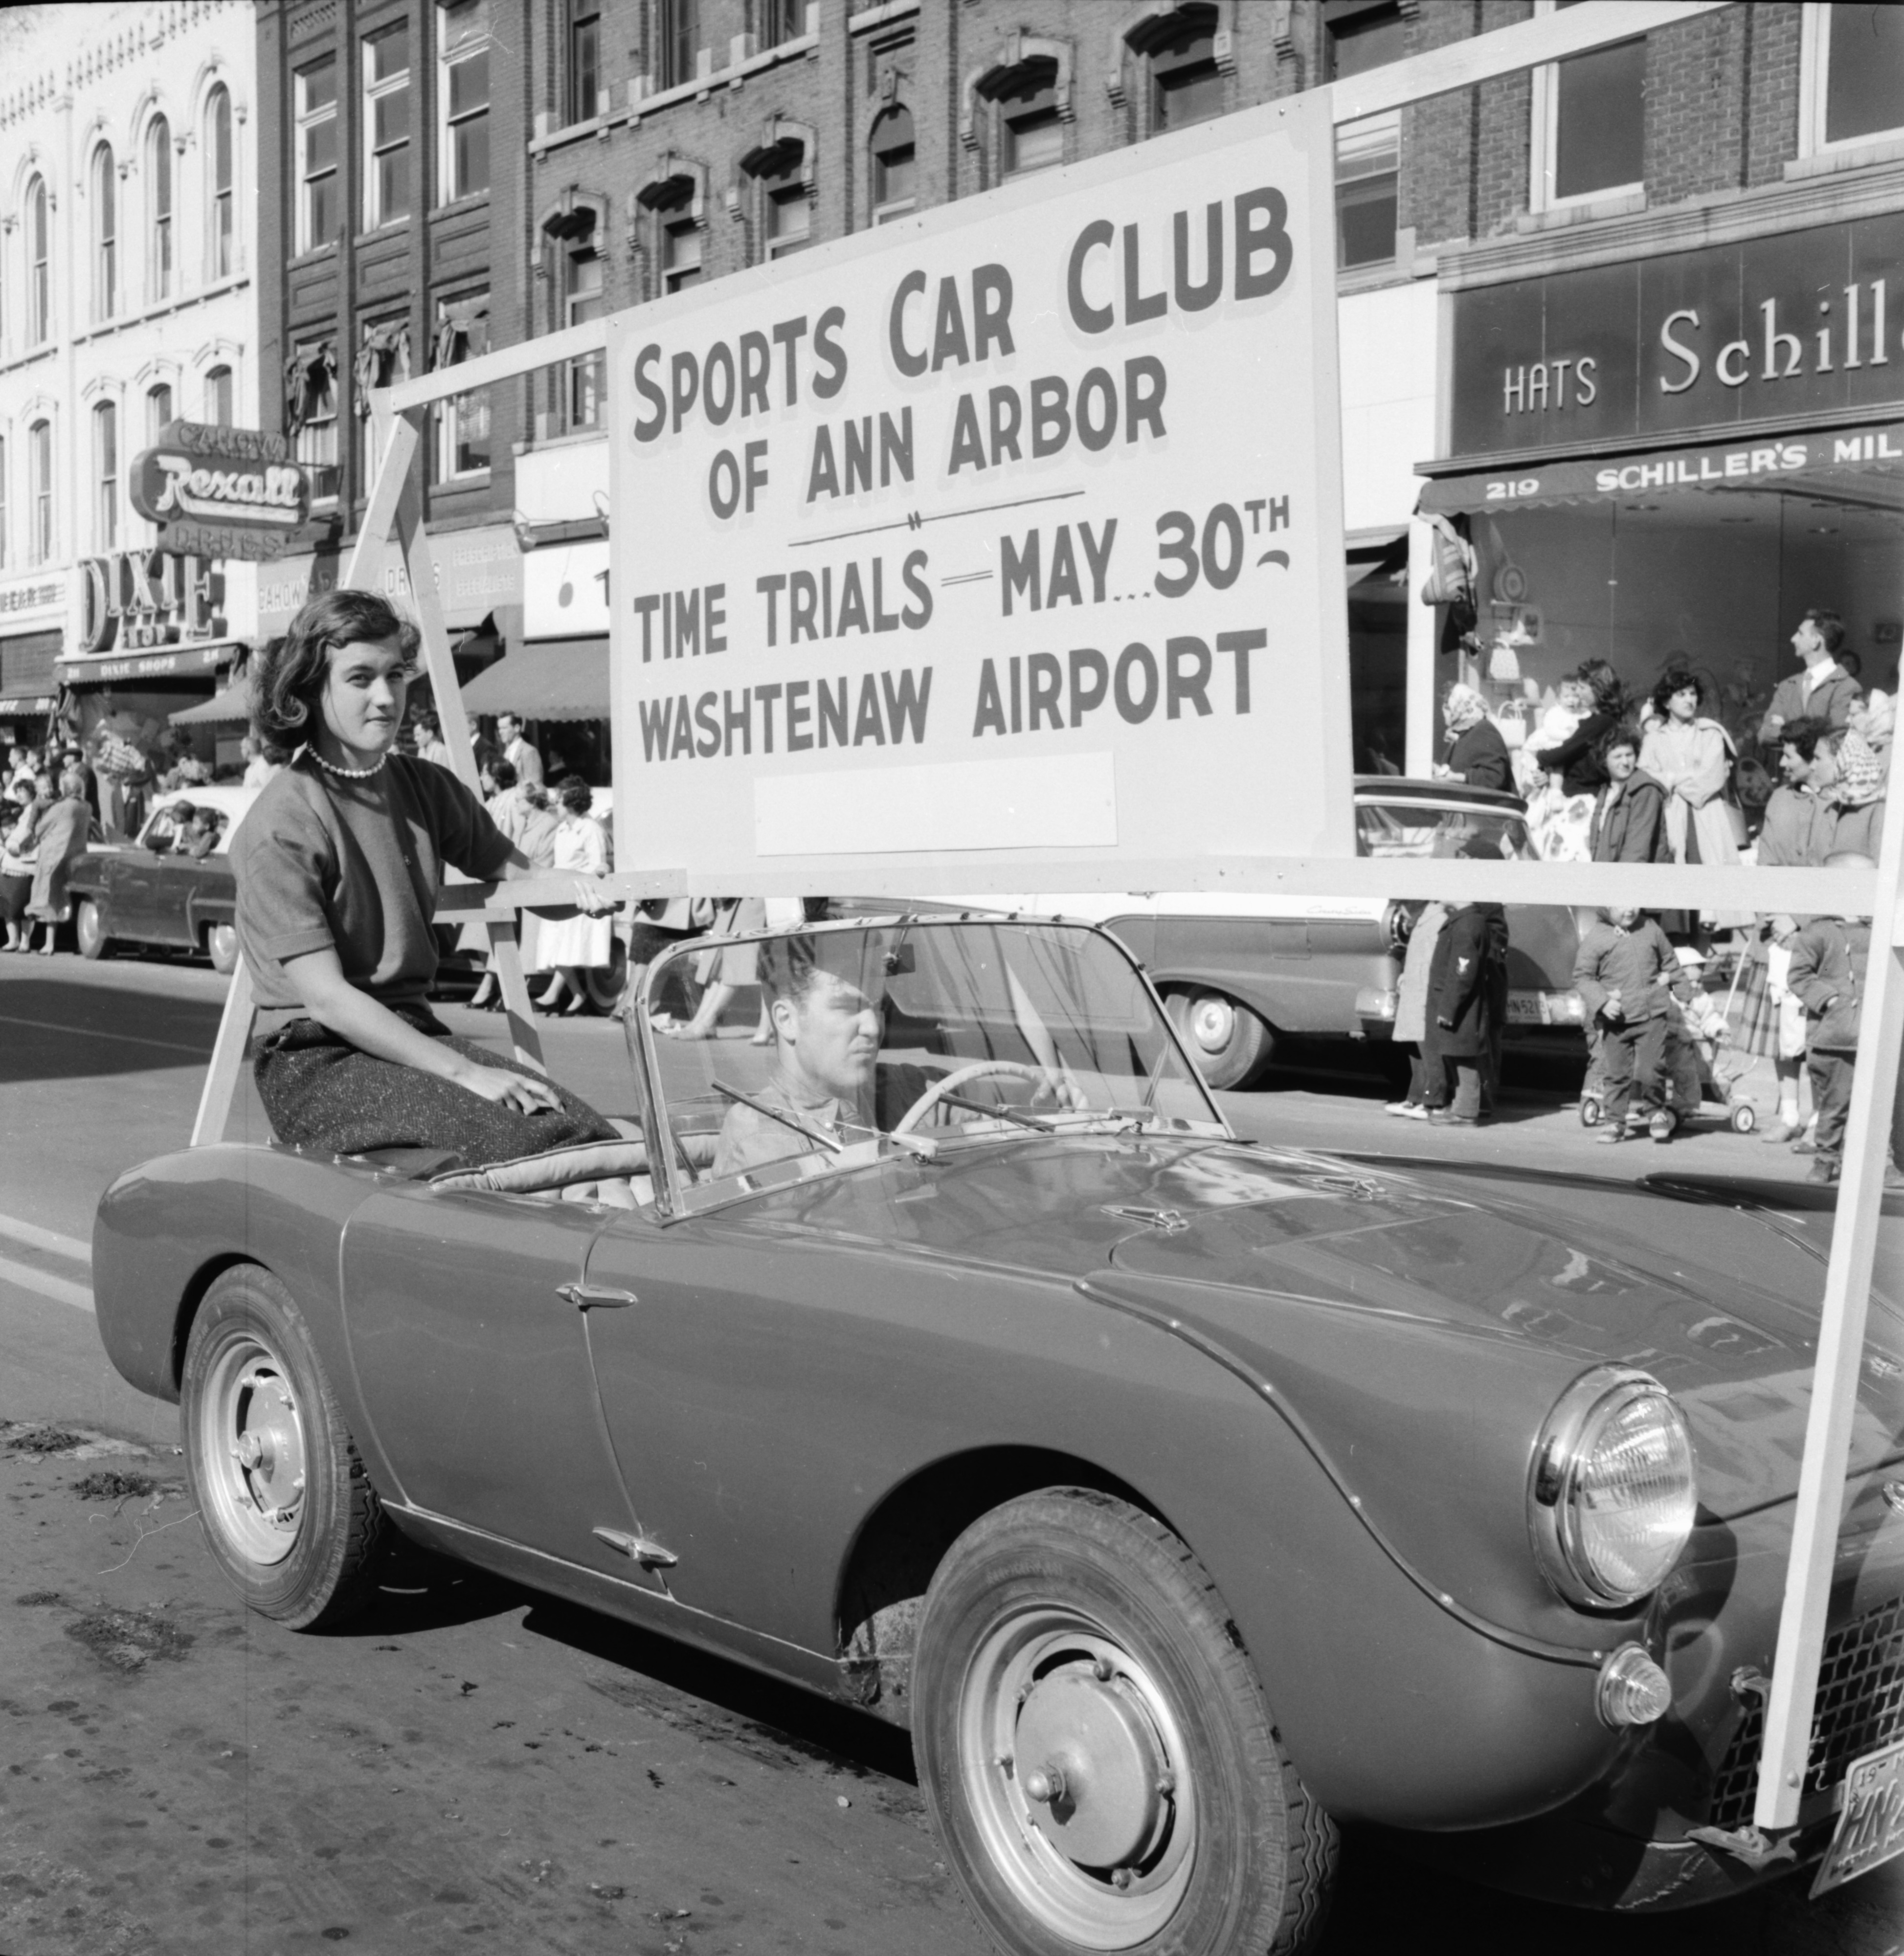 Sports Car Club of Ann Arbor in the Michigras Parade, April 1958 image